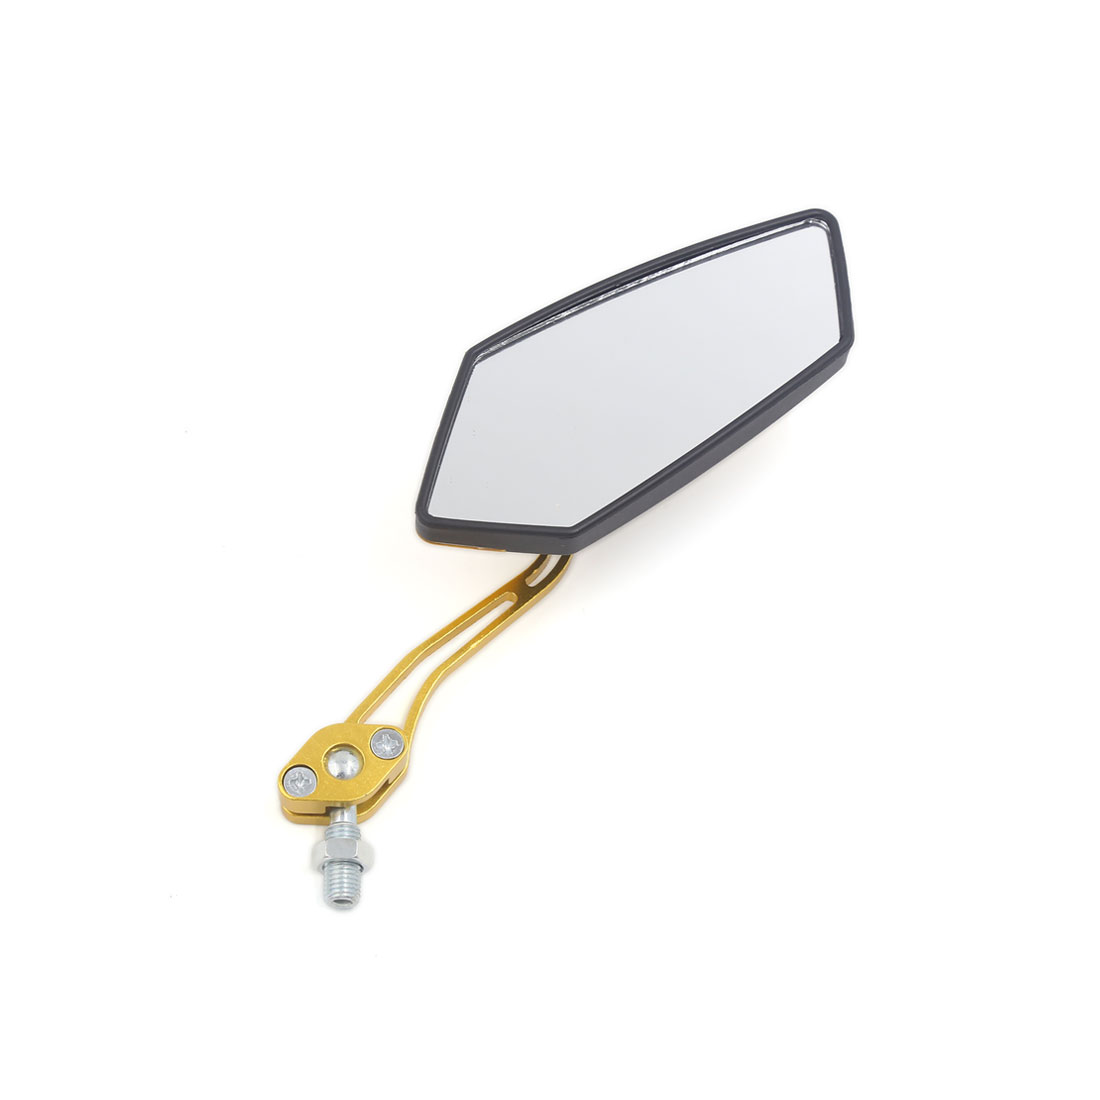 Pair Universal Pentagon Shaped Rearview Mirrors 10mm Thread Dia for Motorcycle - image 1 of 4